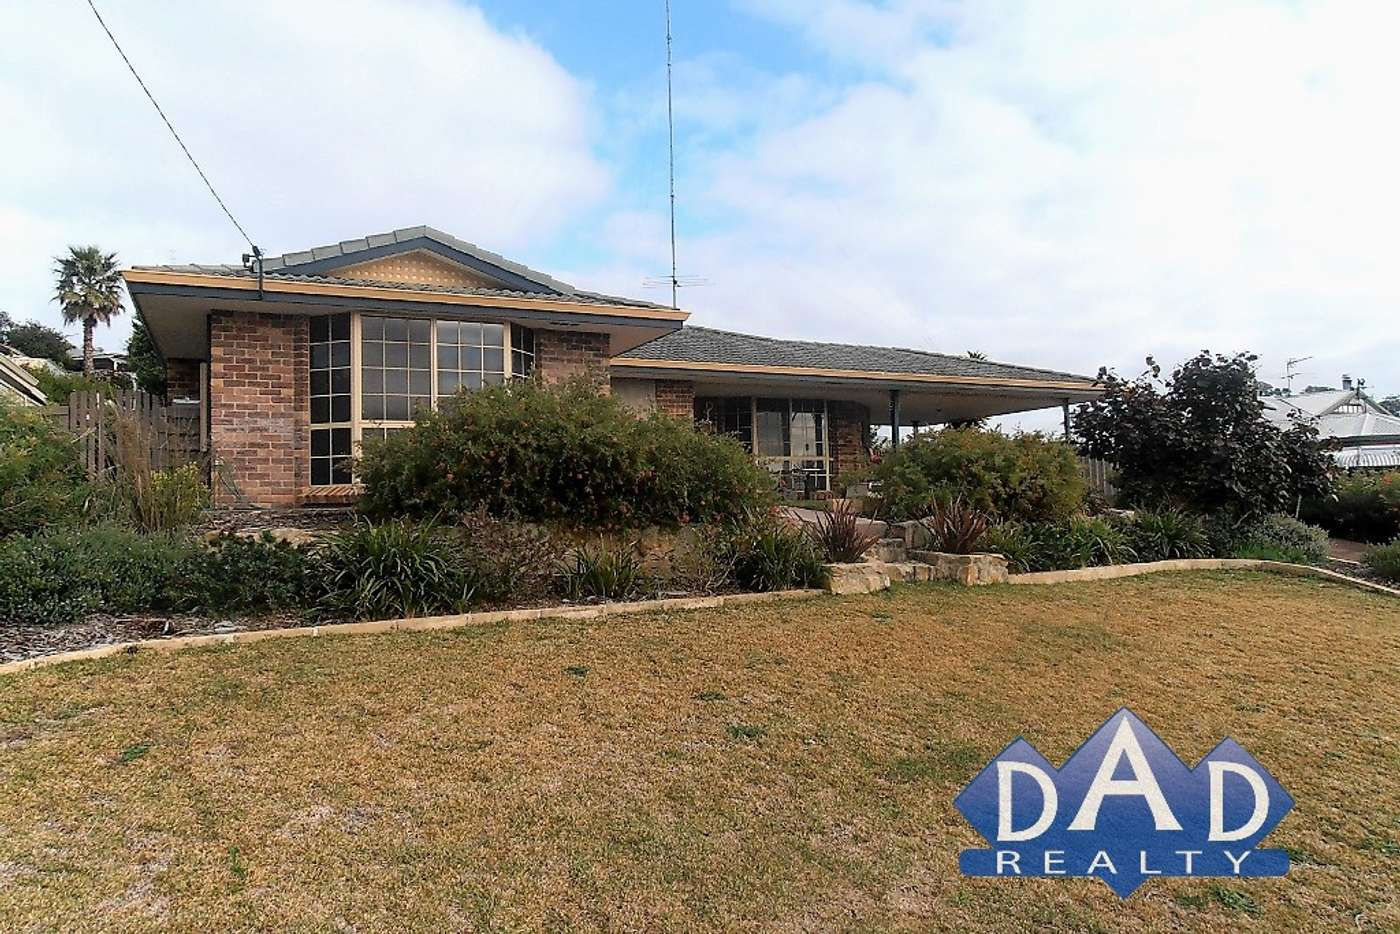 Main view of Homely house listing, 64 Wakefield Crescent, Australind WA 6233